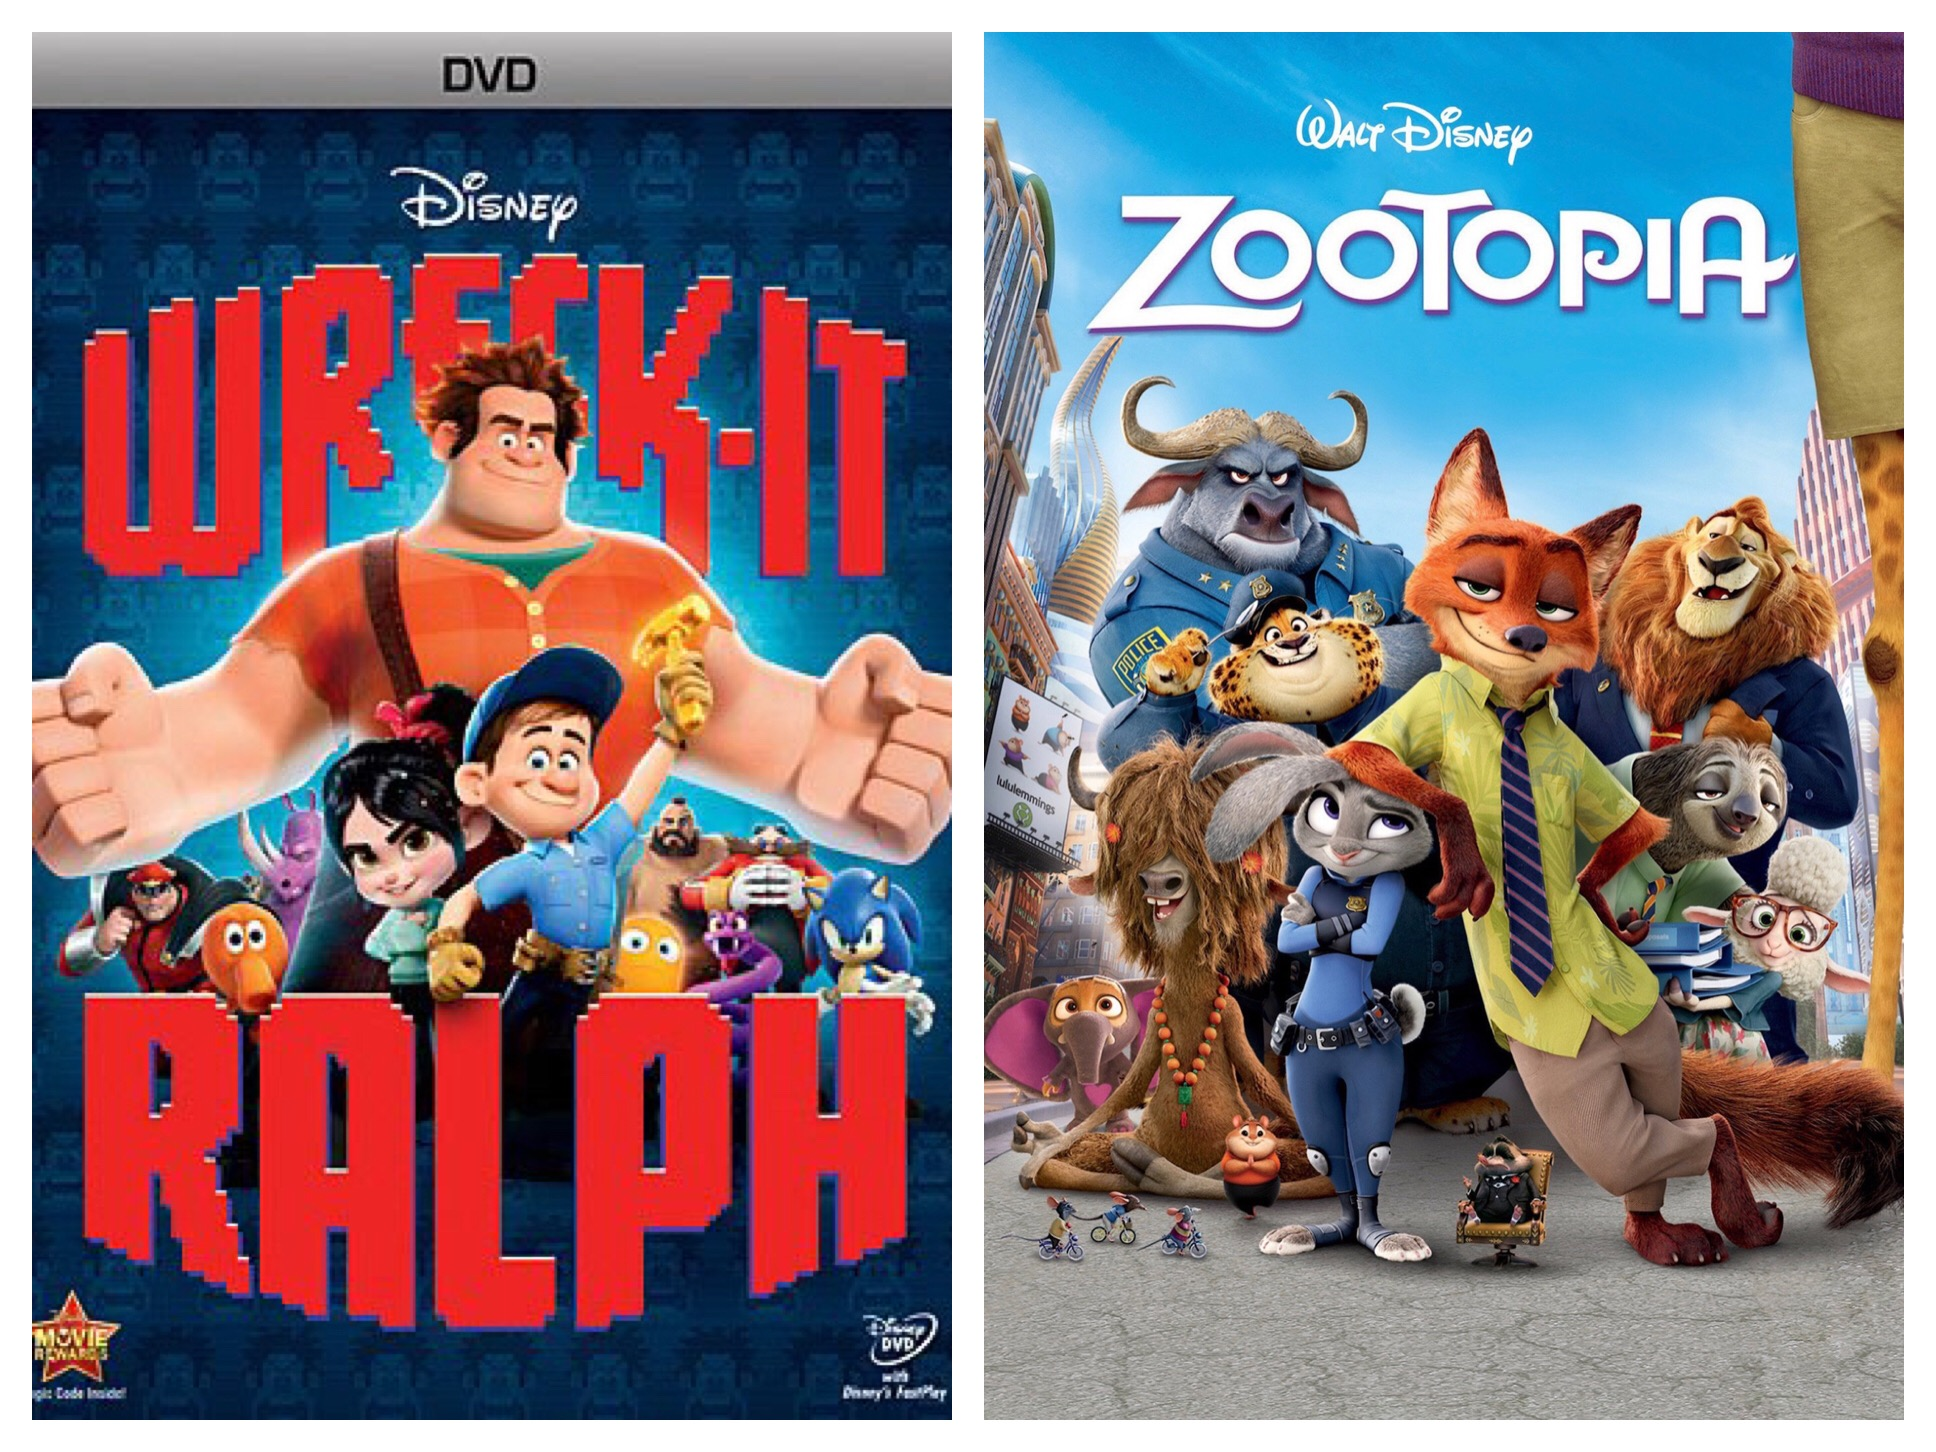 Ratigan6688/Similarities I Have Noticed With Wreck-It-Ralph And Zootopia